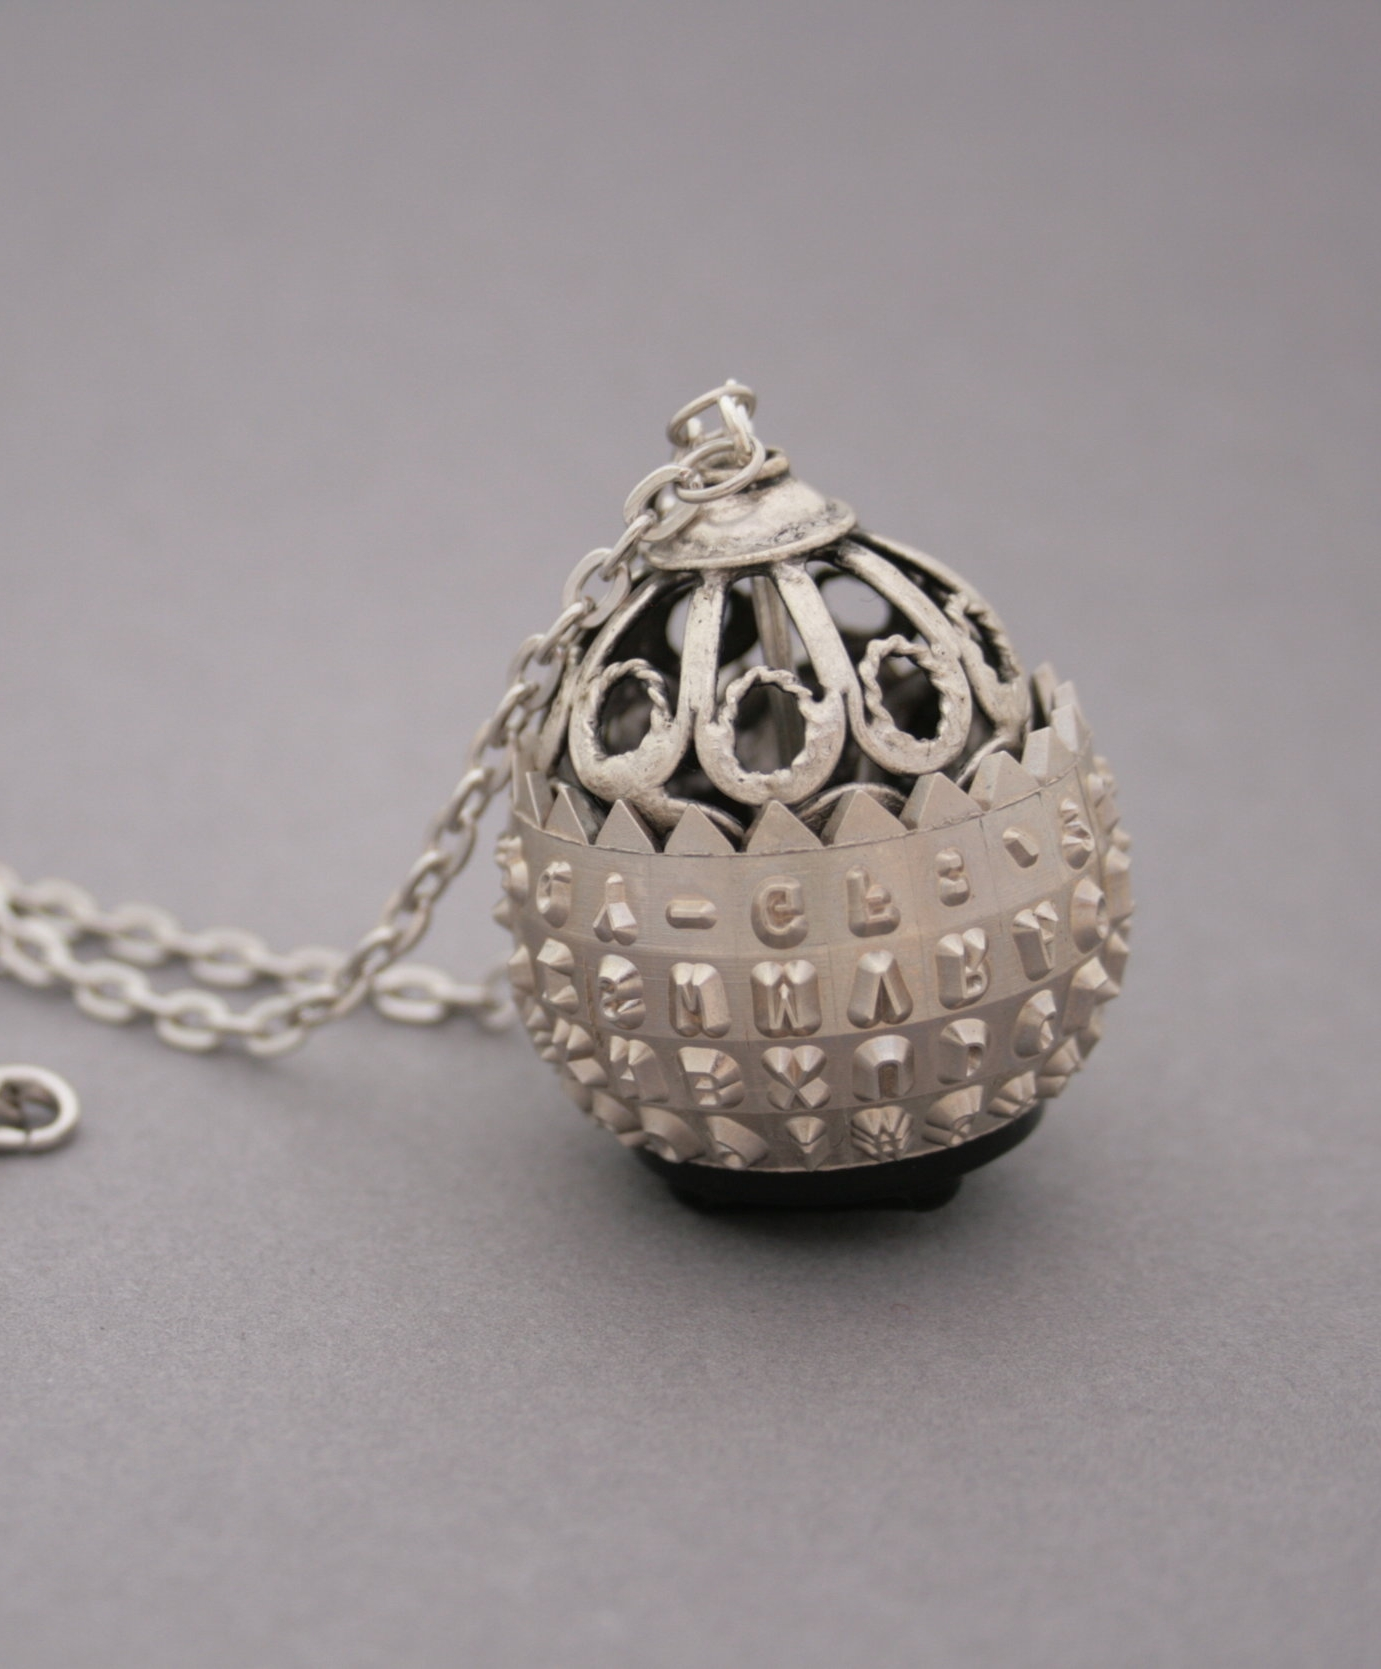 statement jewellery made of antique typewriter / ibm selectric type ball necklace